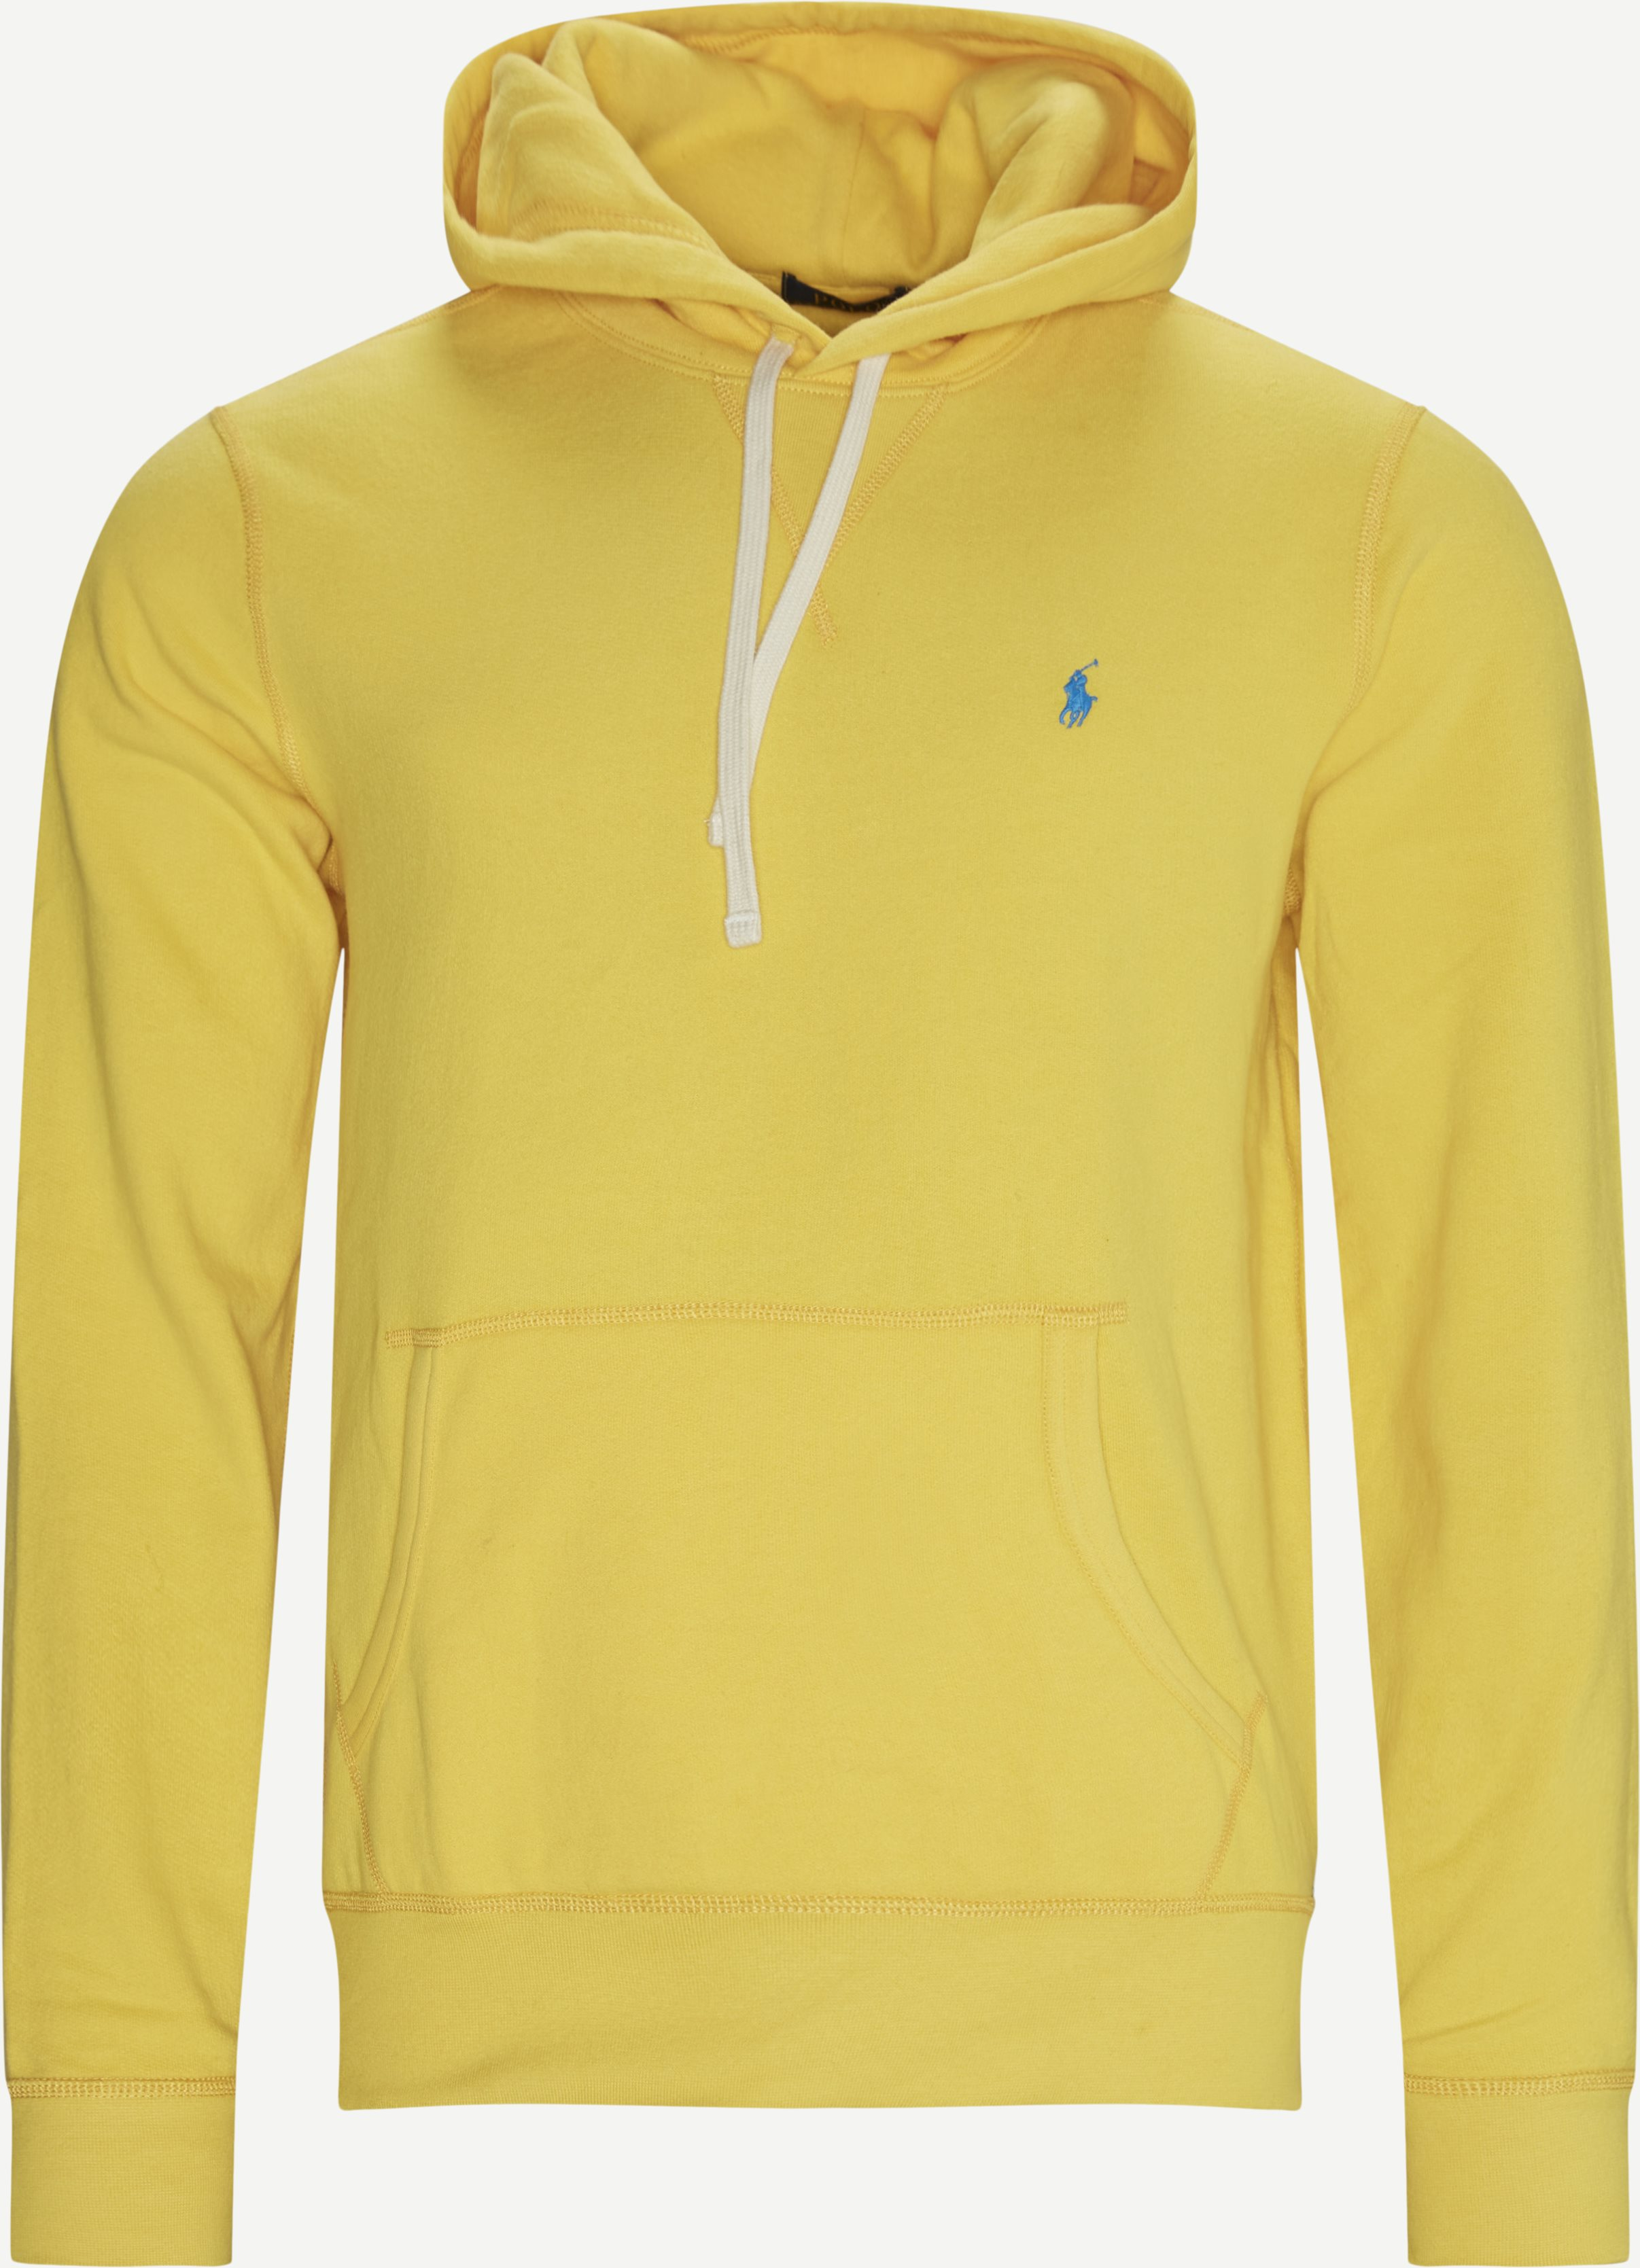 Hooded Sweatshirt - Sweatshirts - Regular - Yellow